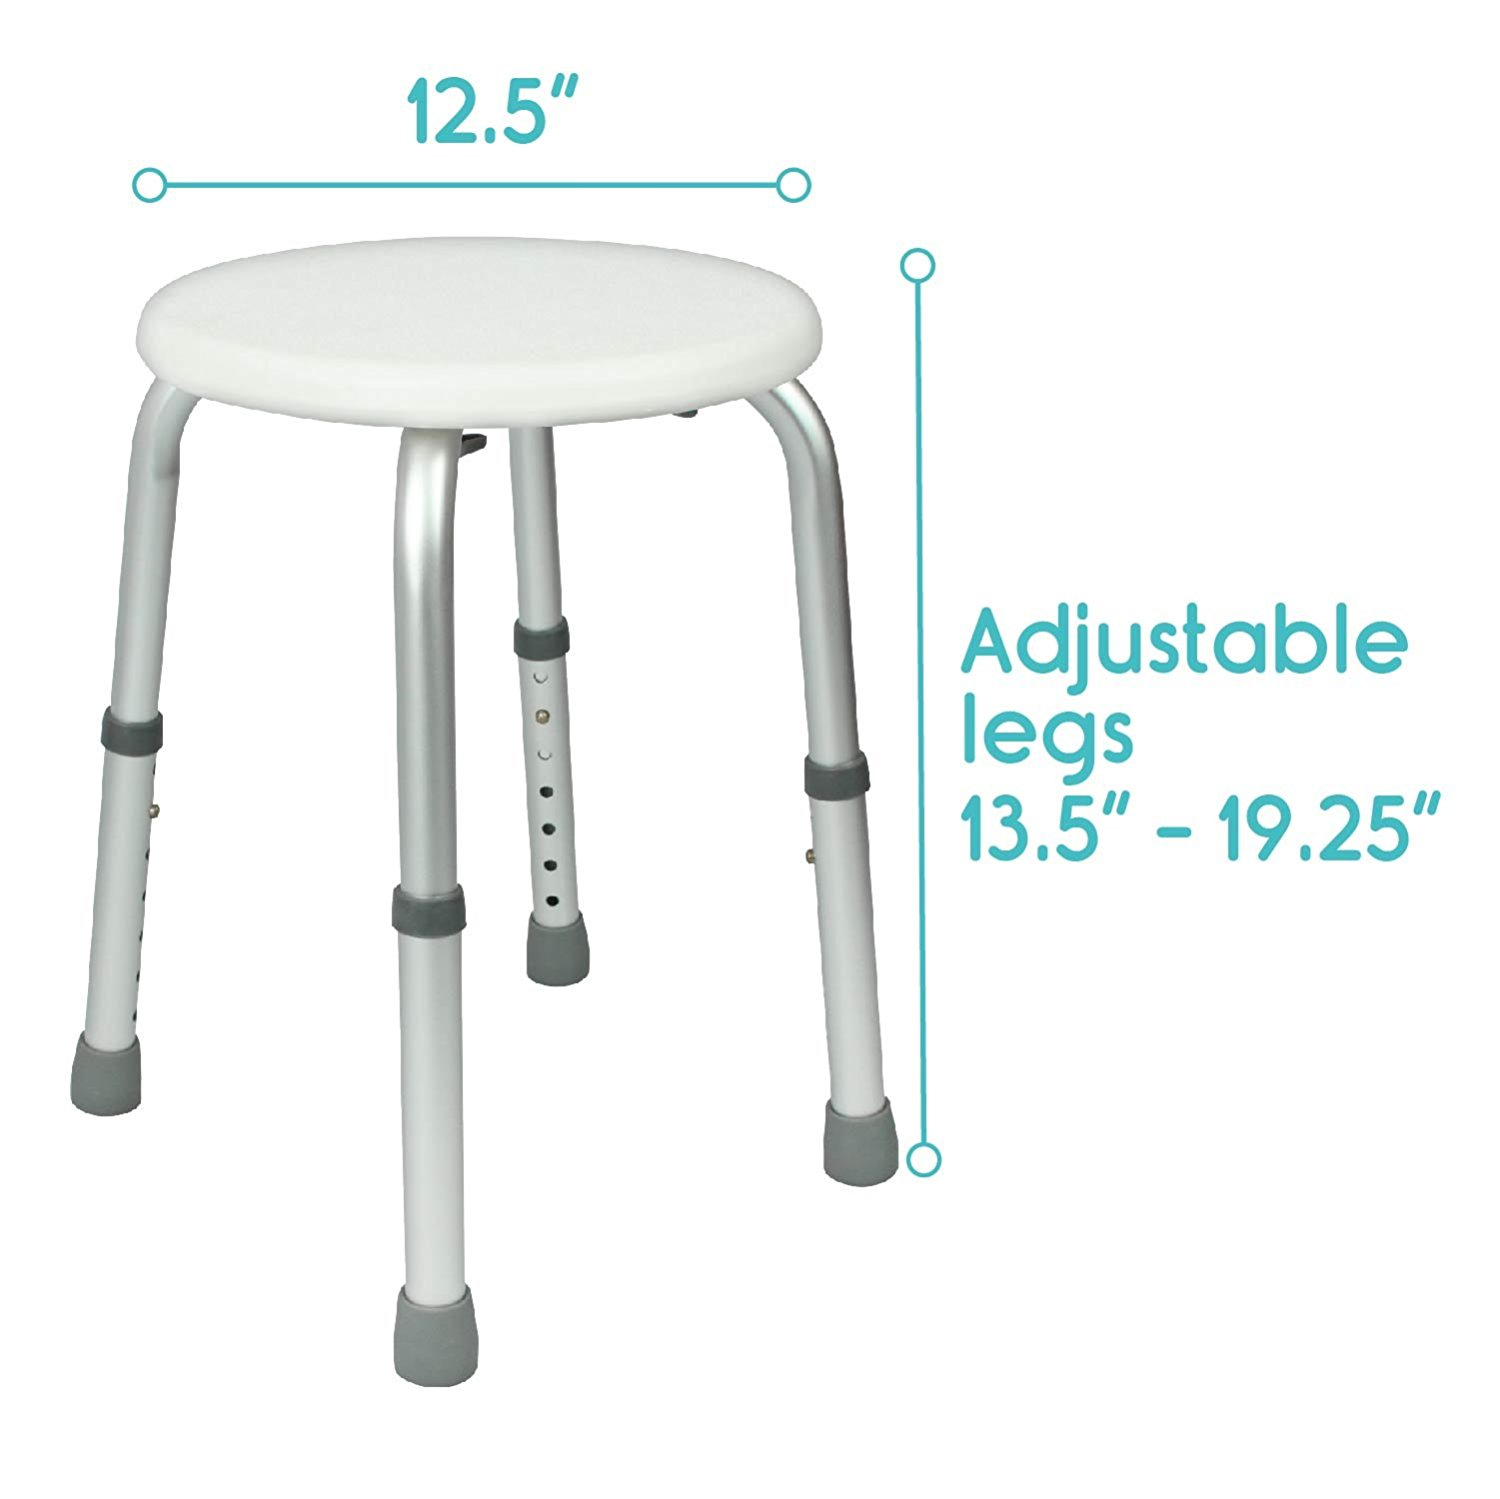 at essential online uk aids lets large cheaply buy sing click stool expand to shower